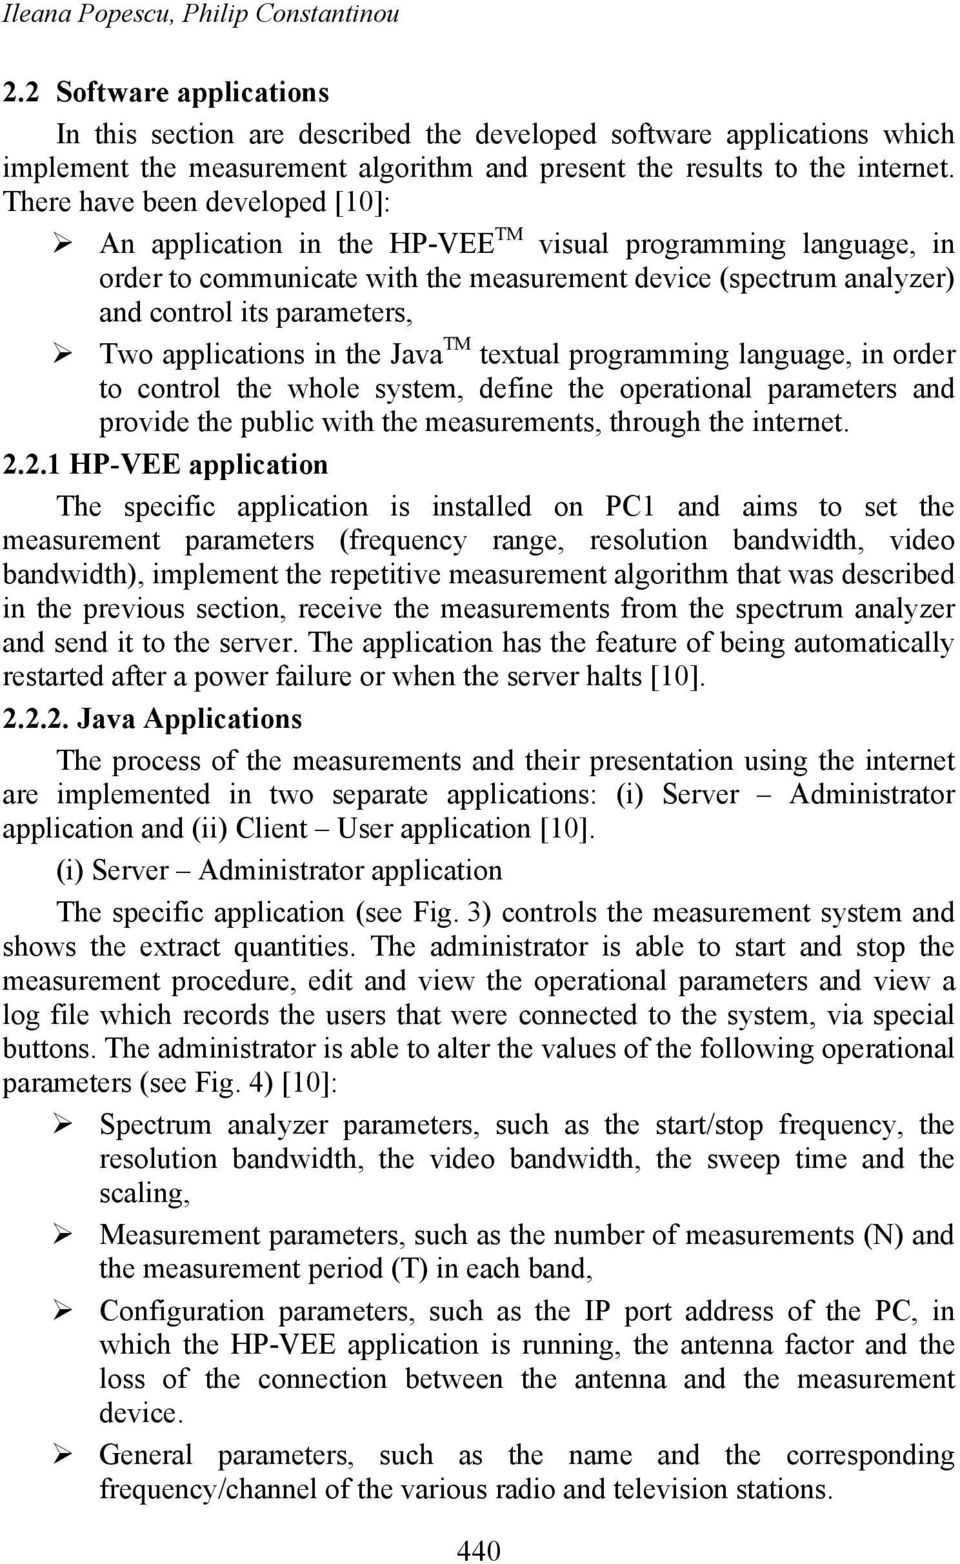 There have been developed [10]: An application in the HP-VEE TM visual programming language, in order to communicate with the measurement device (spectrum analyzer) and control its parameters, Two